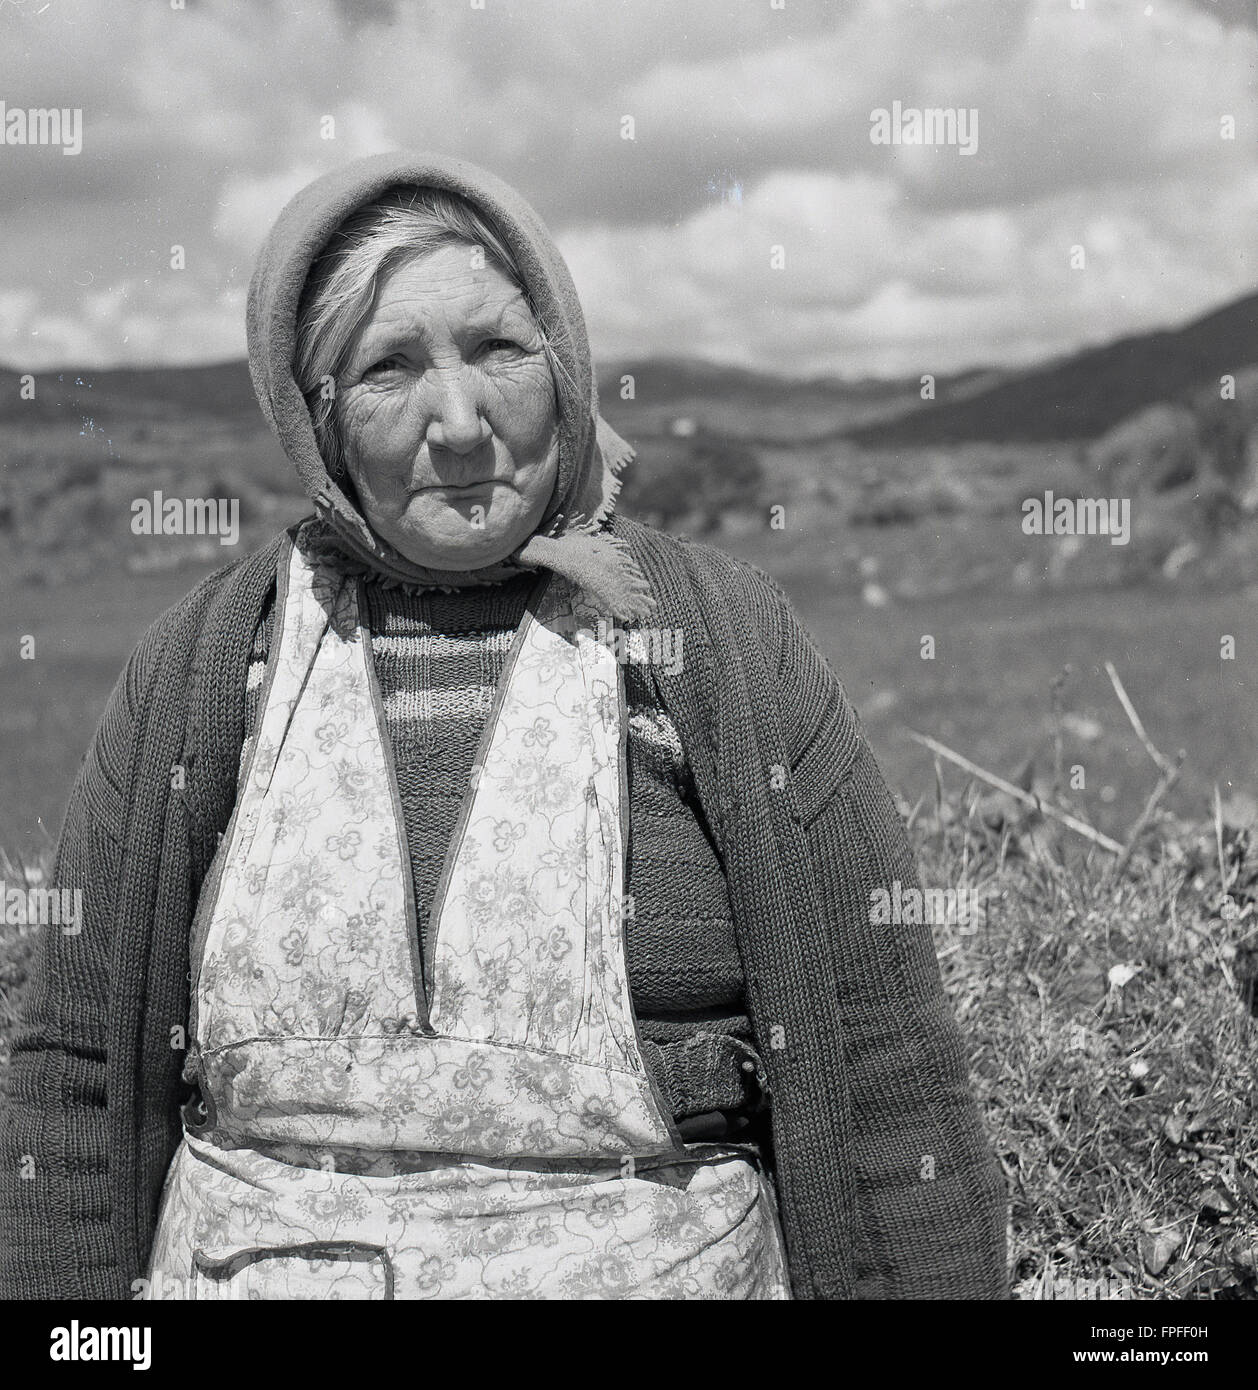 White apron ireland - 1950s Historical Portrait By J Allan Cash Of An Irish Country Woman Resting By Hedgerow